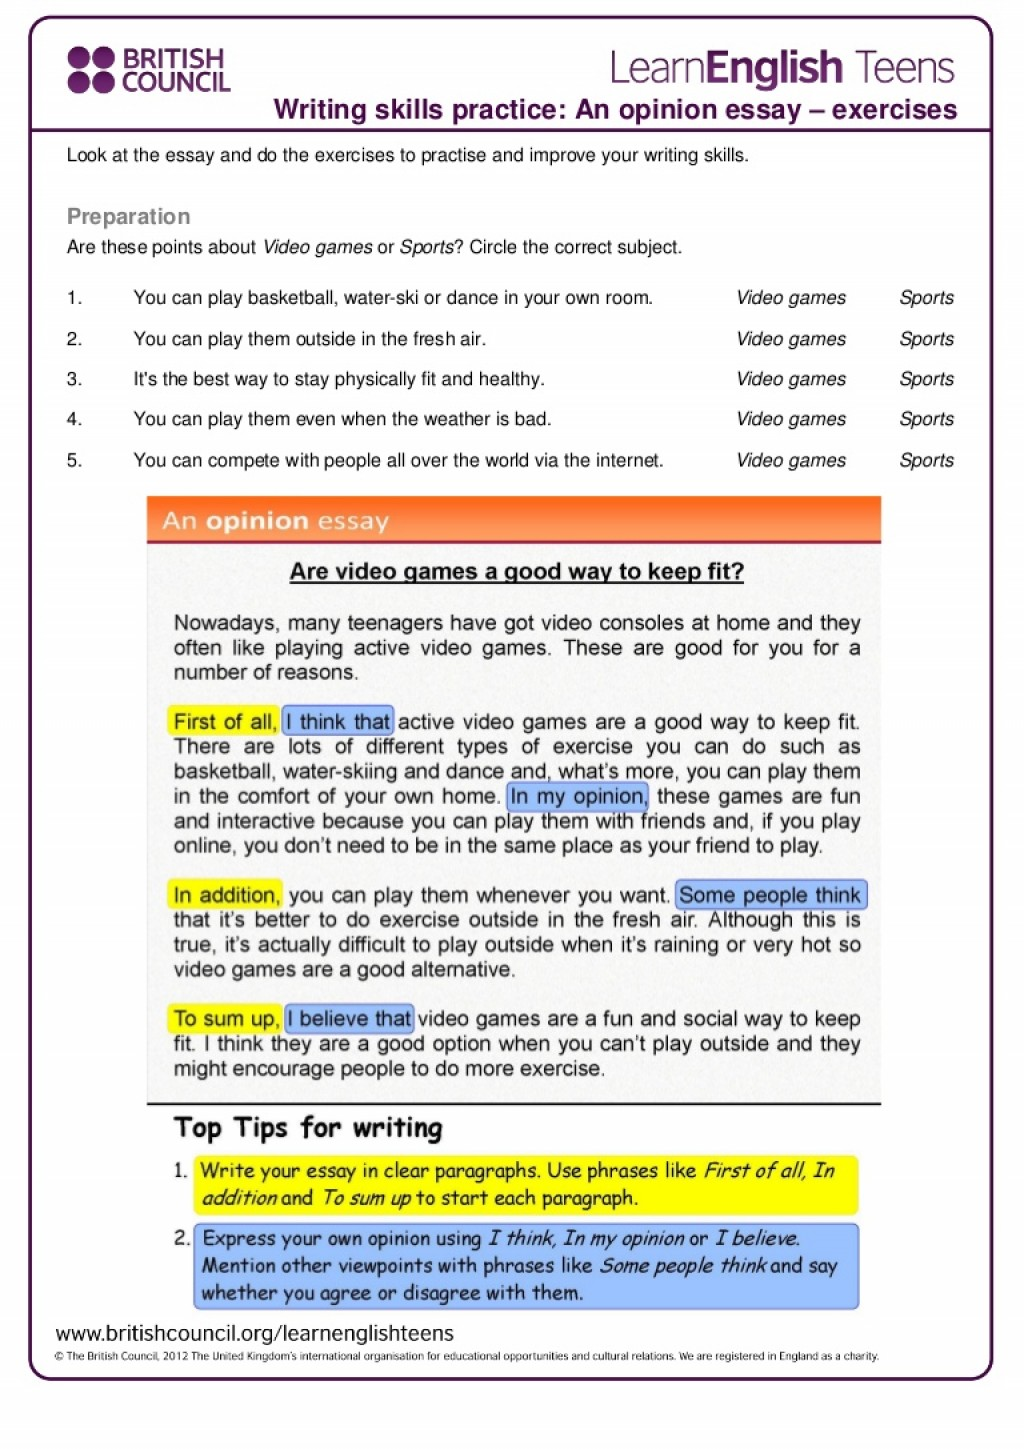 006 Essay Example Anopinionessay Exercises Thumbnail Writing Unusual Practice App Online For Upsc Worksheets Pdf Large